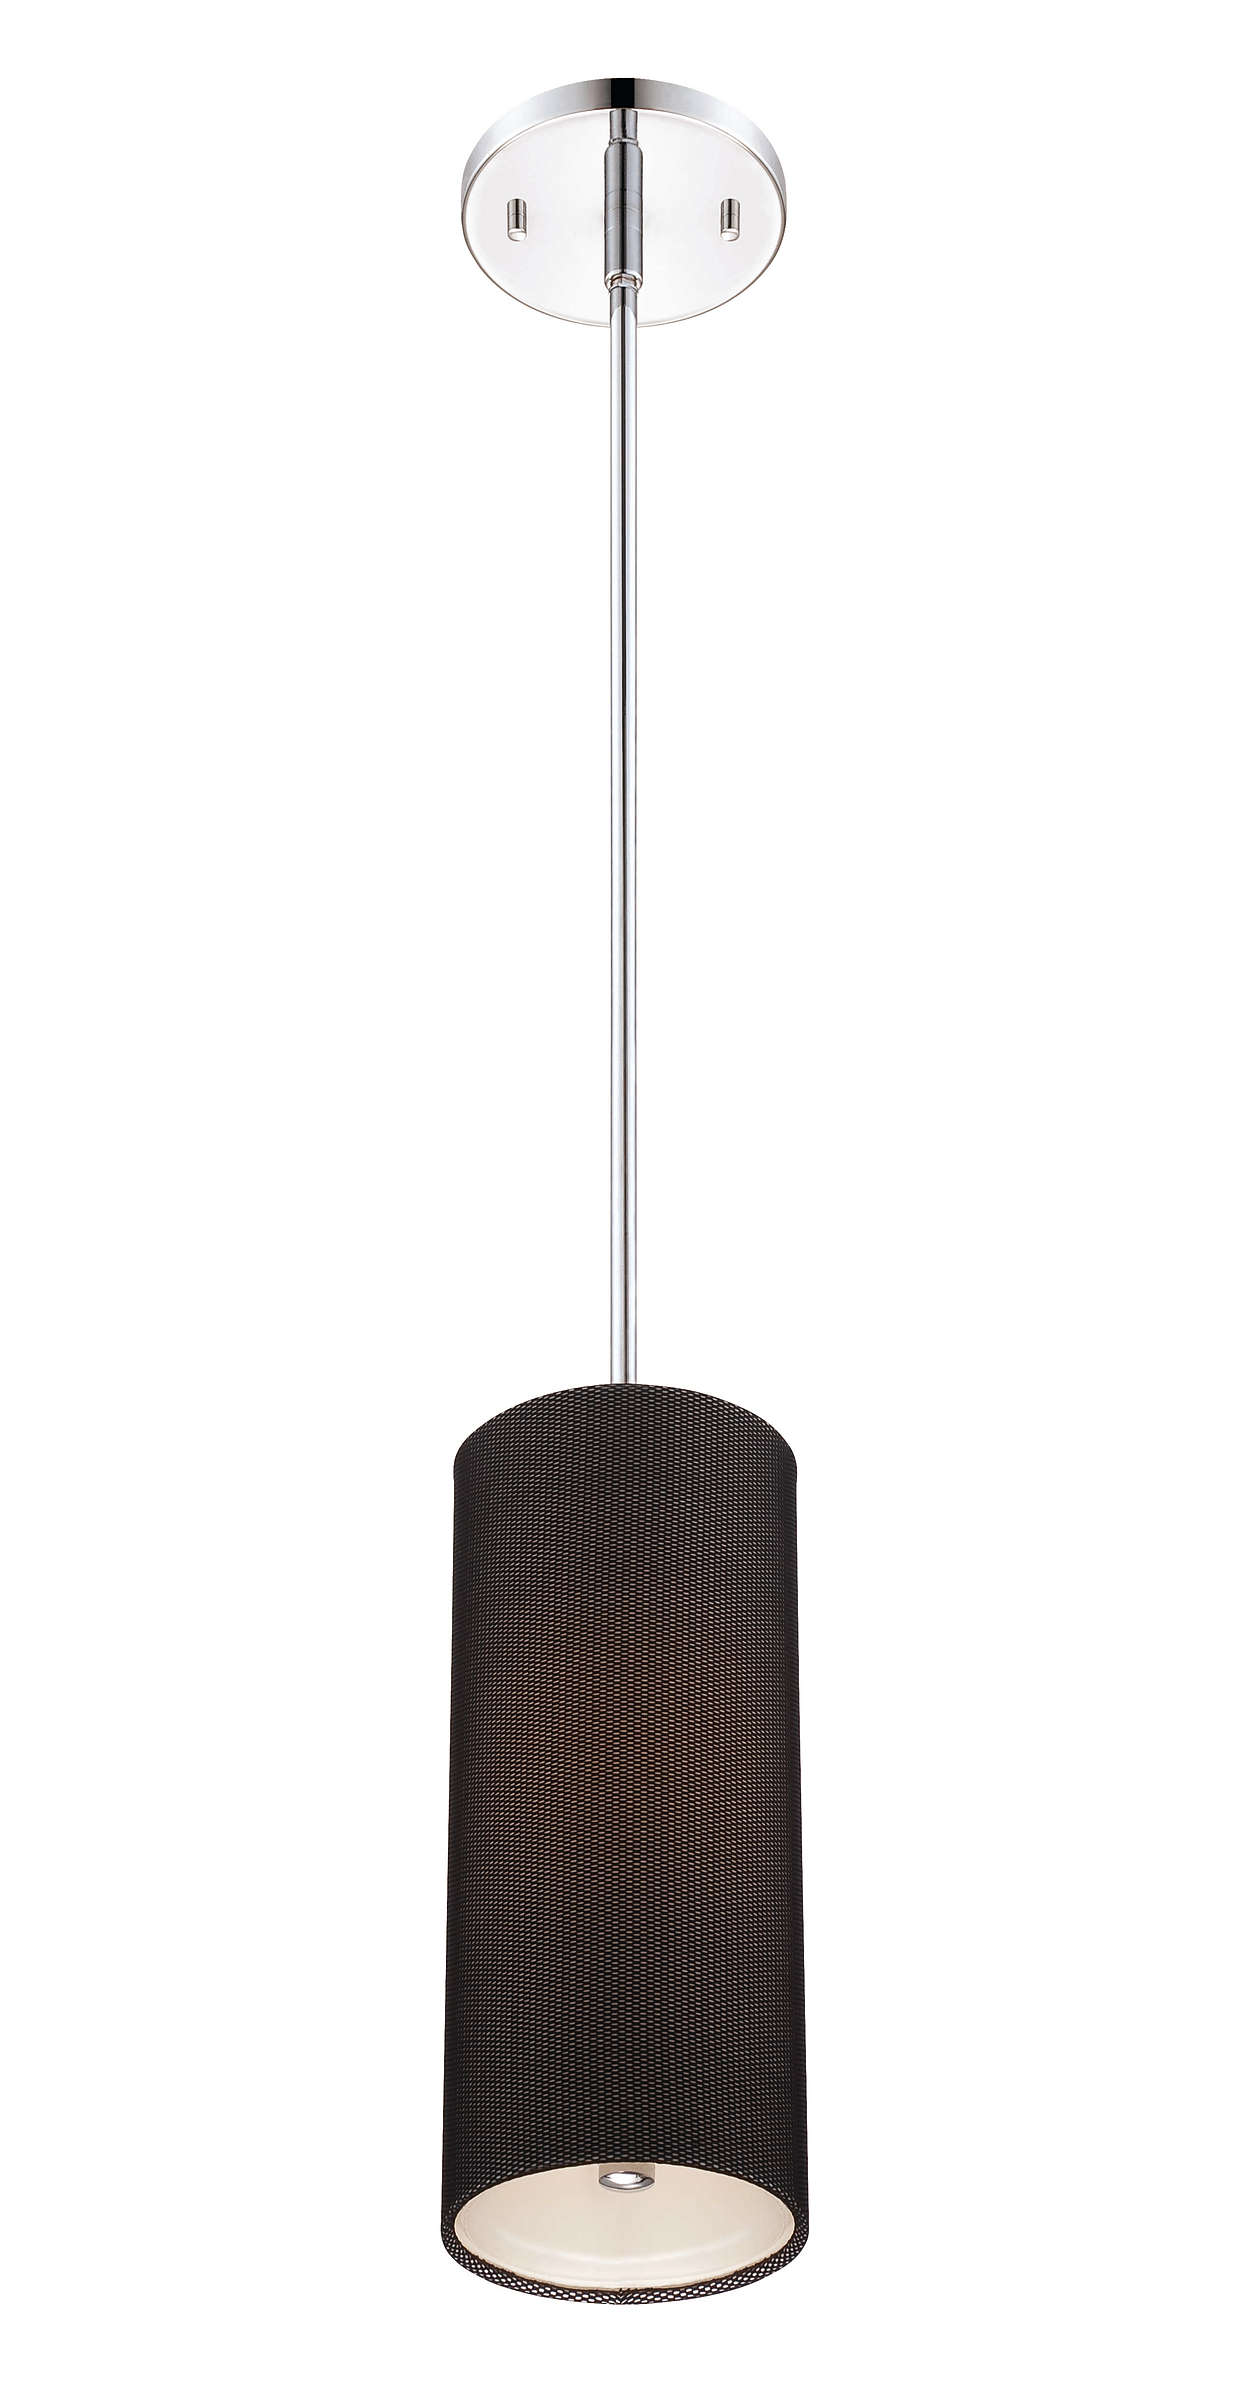 Fishnet 1-light pendant in Chrome finish